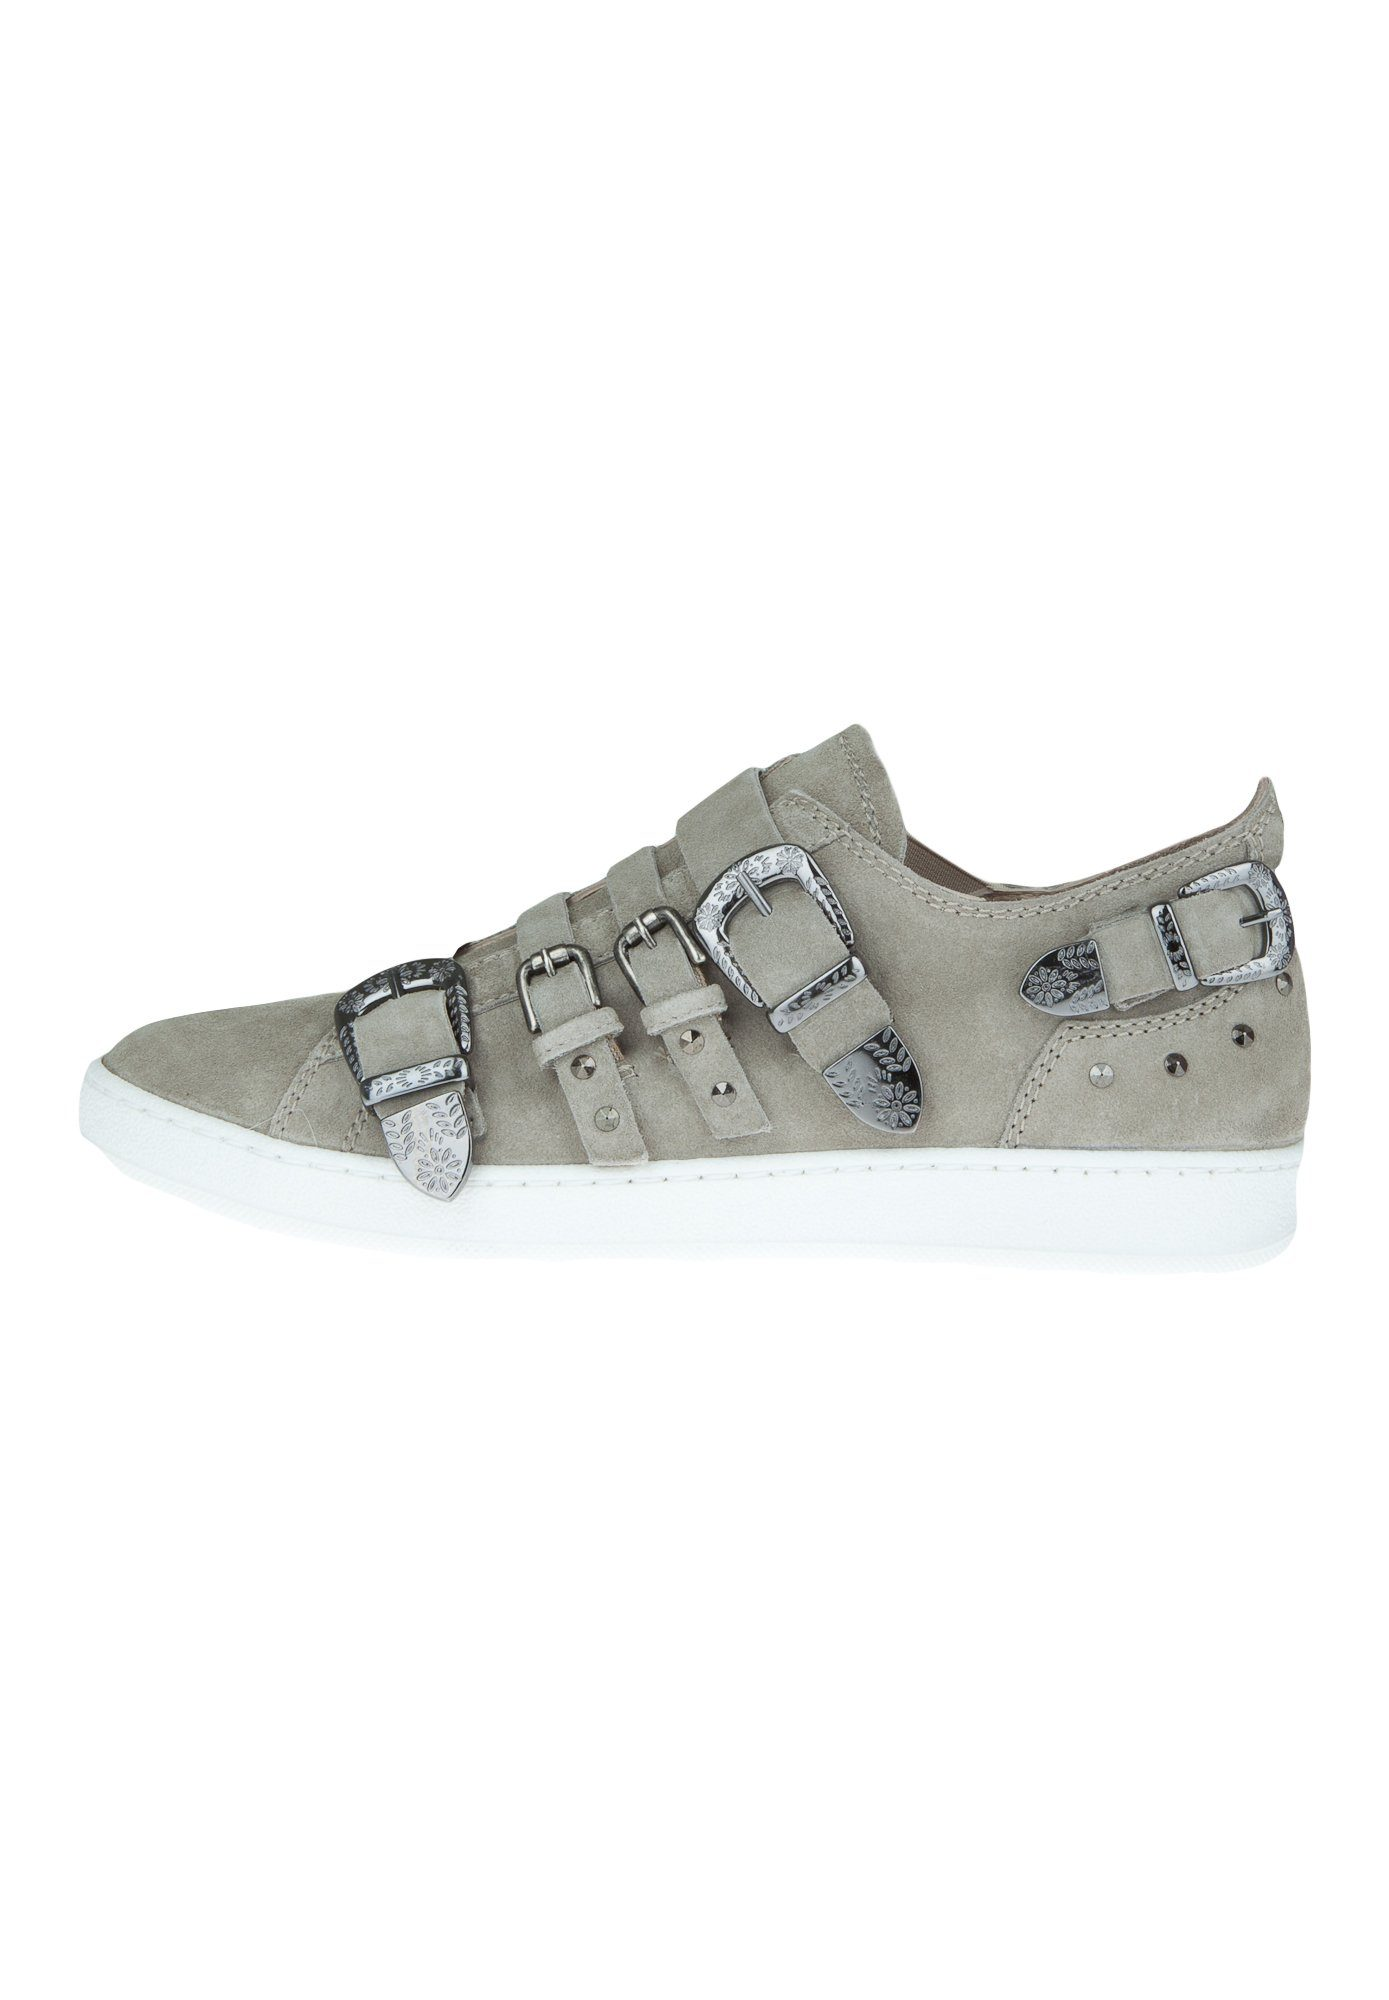 Donna Carolina OREGON Sneaker, Nietenapplikationen online kaufen  khaki